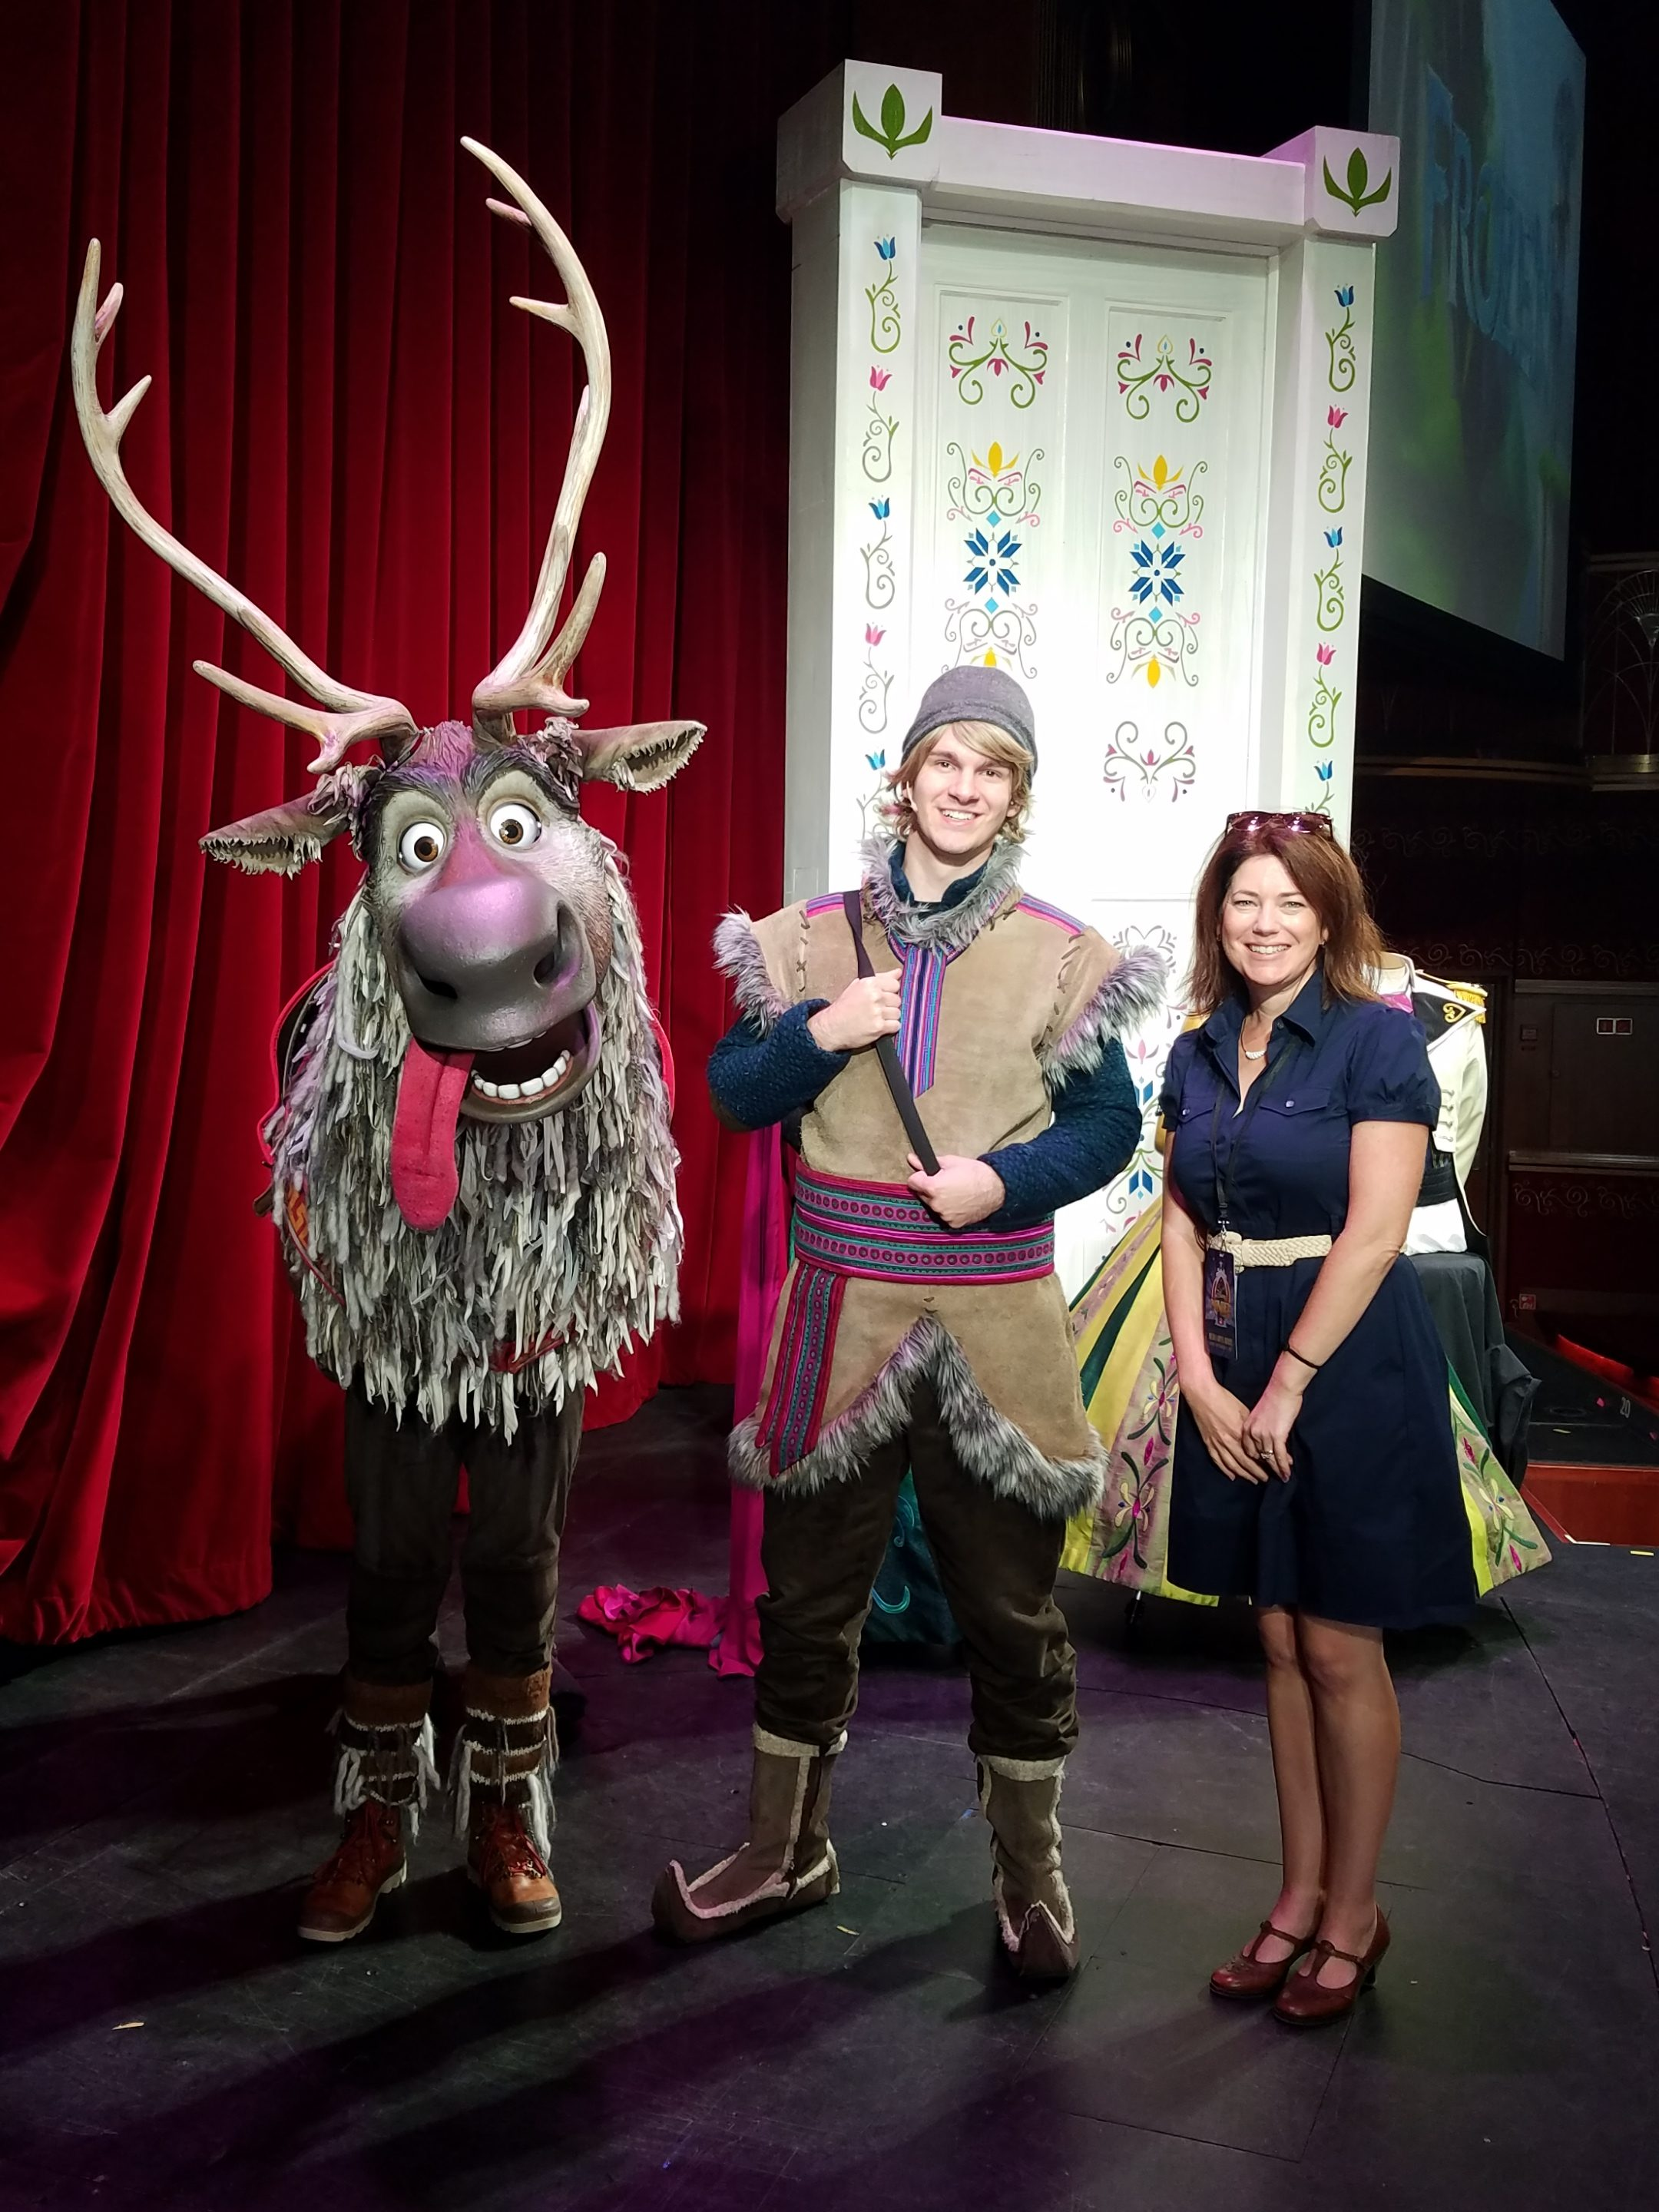 sven and kristoff on the Disney Wonder meet and greet